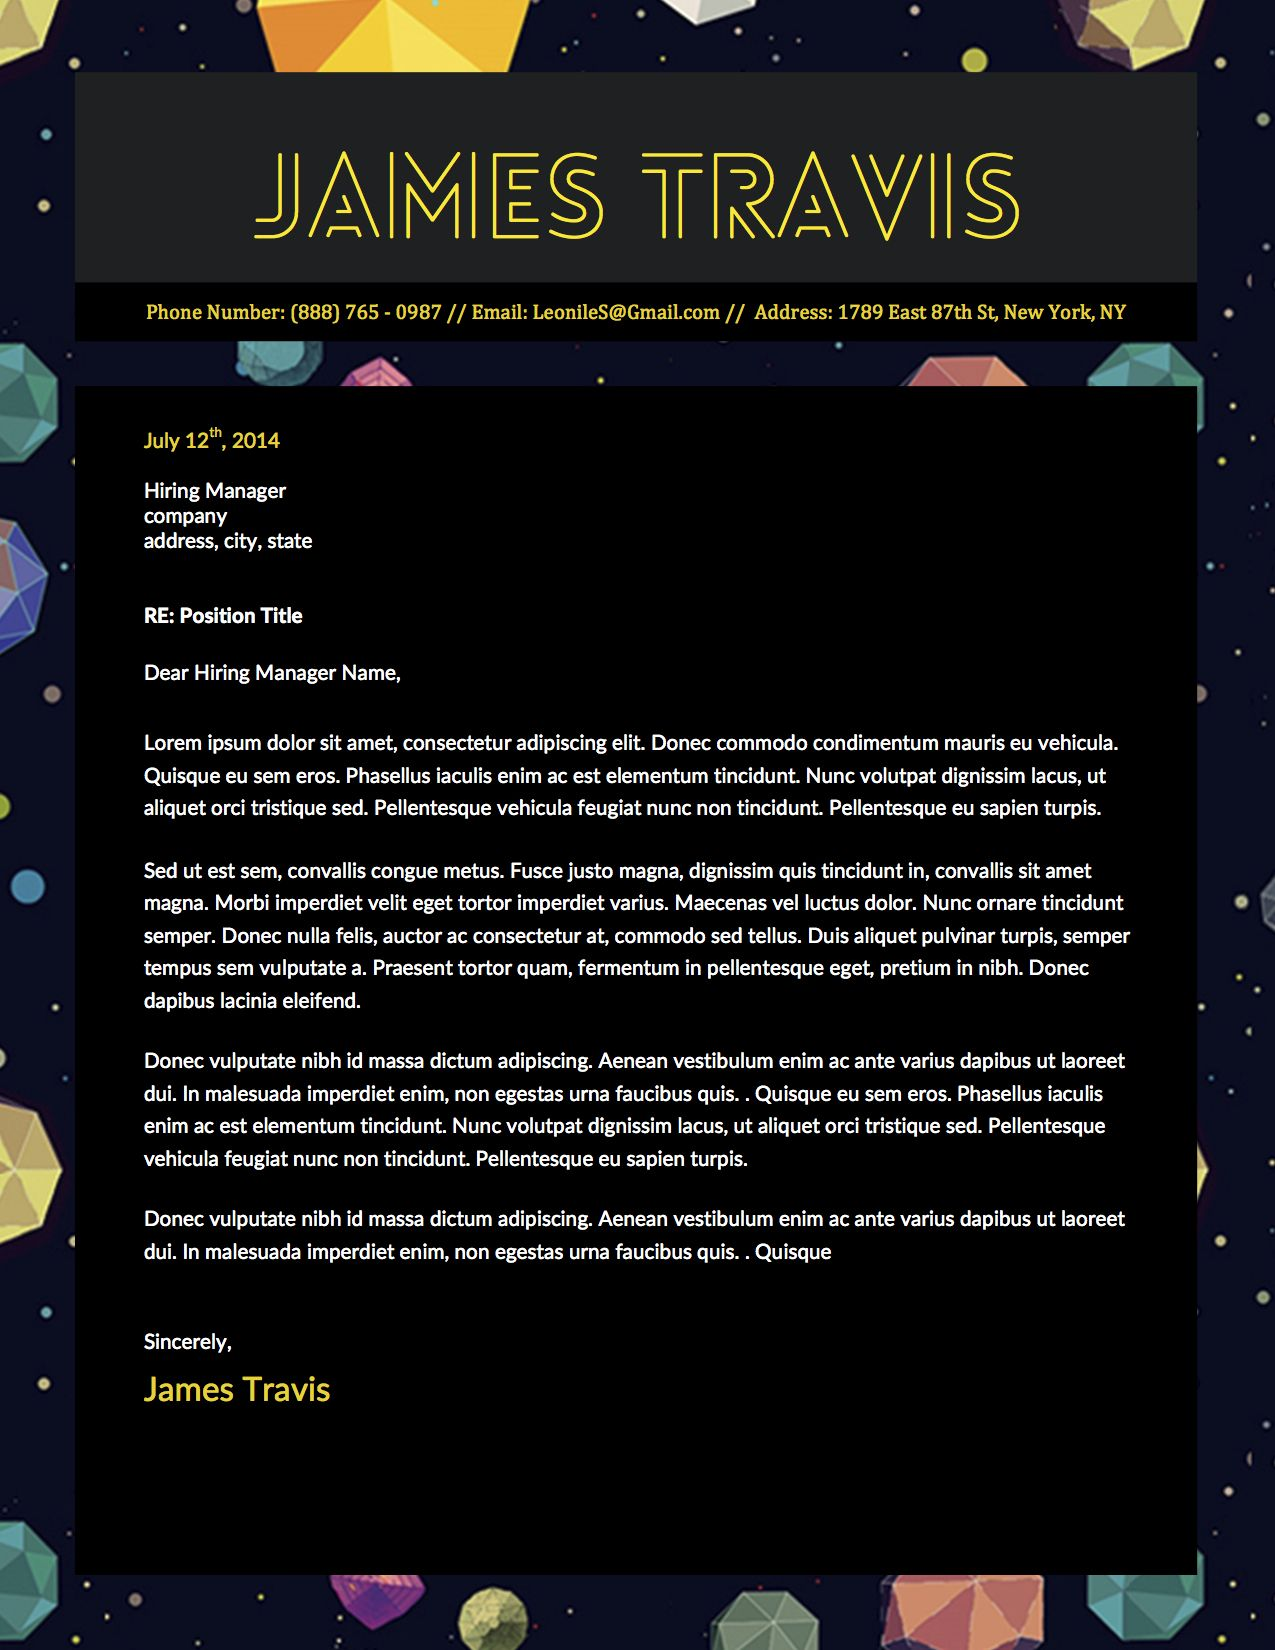 James Travis Creative Gamer Cover Letter Template For Microsoft Word